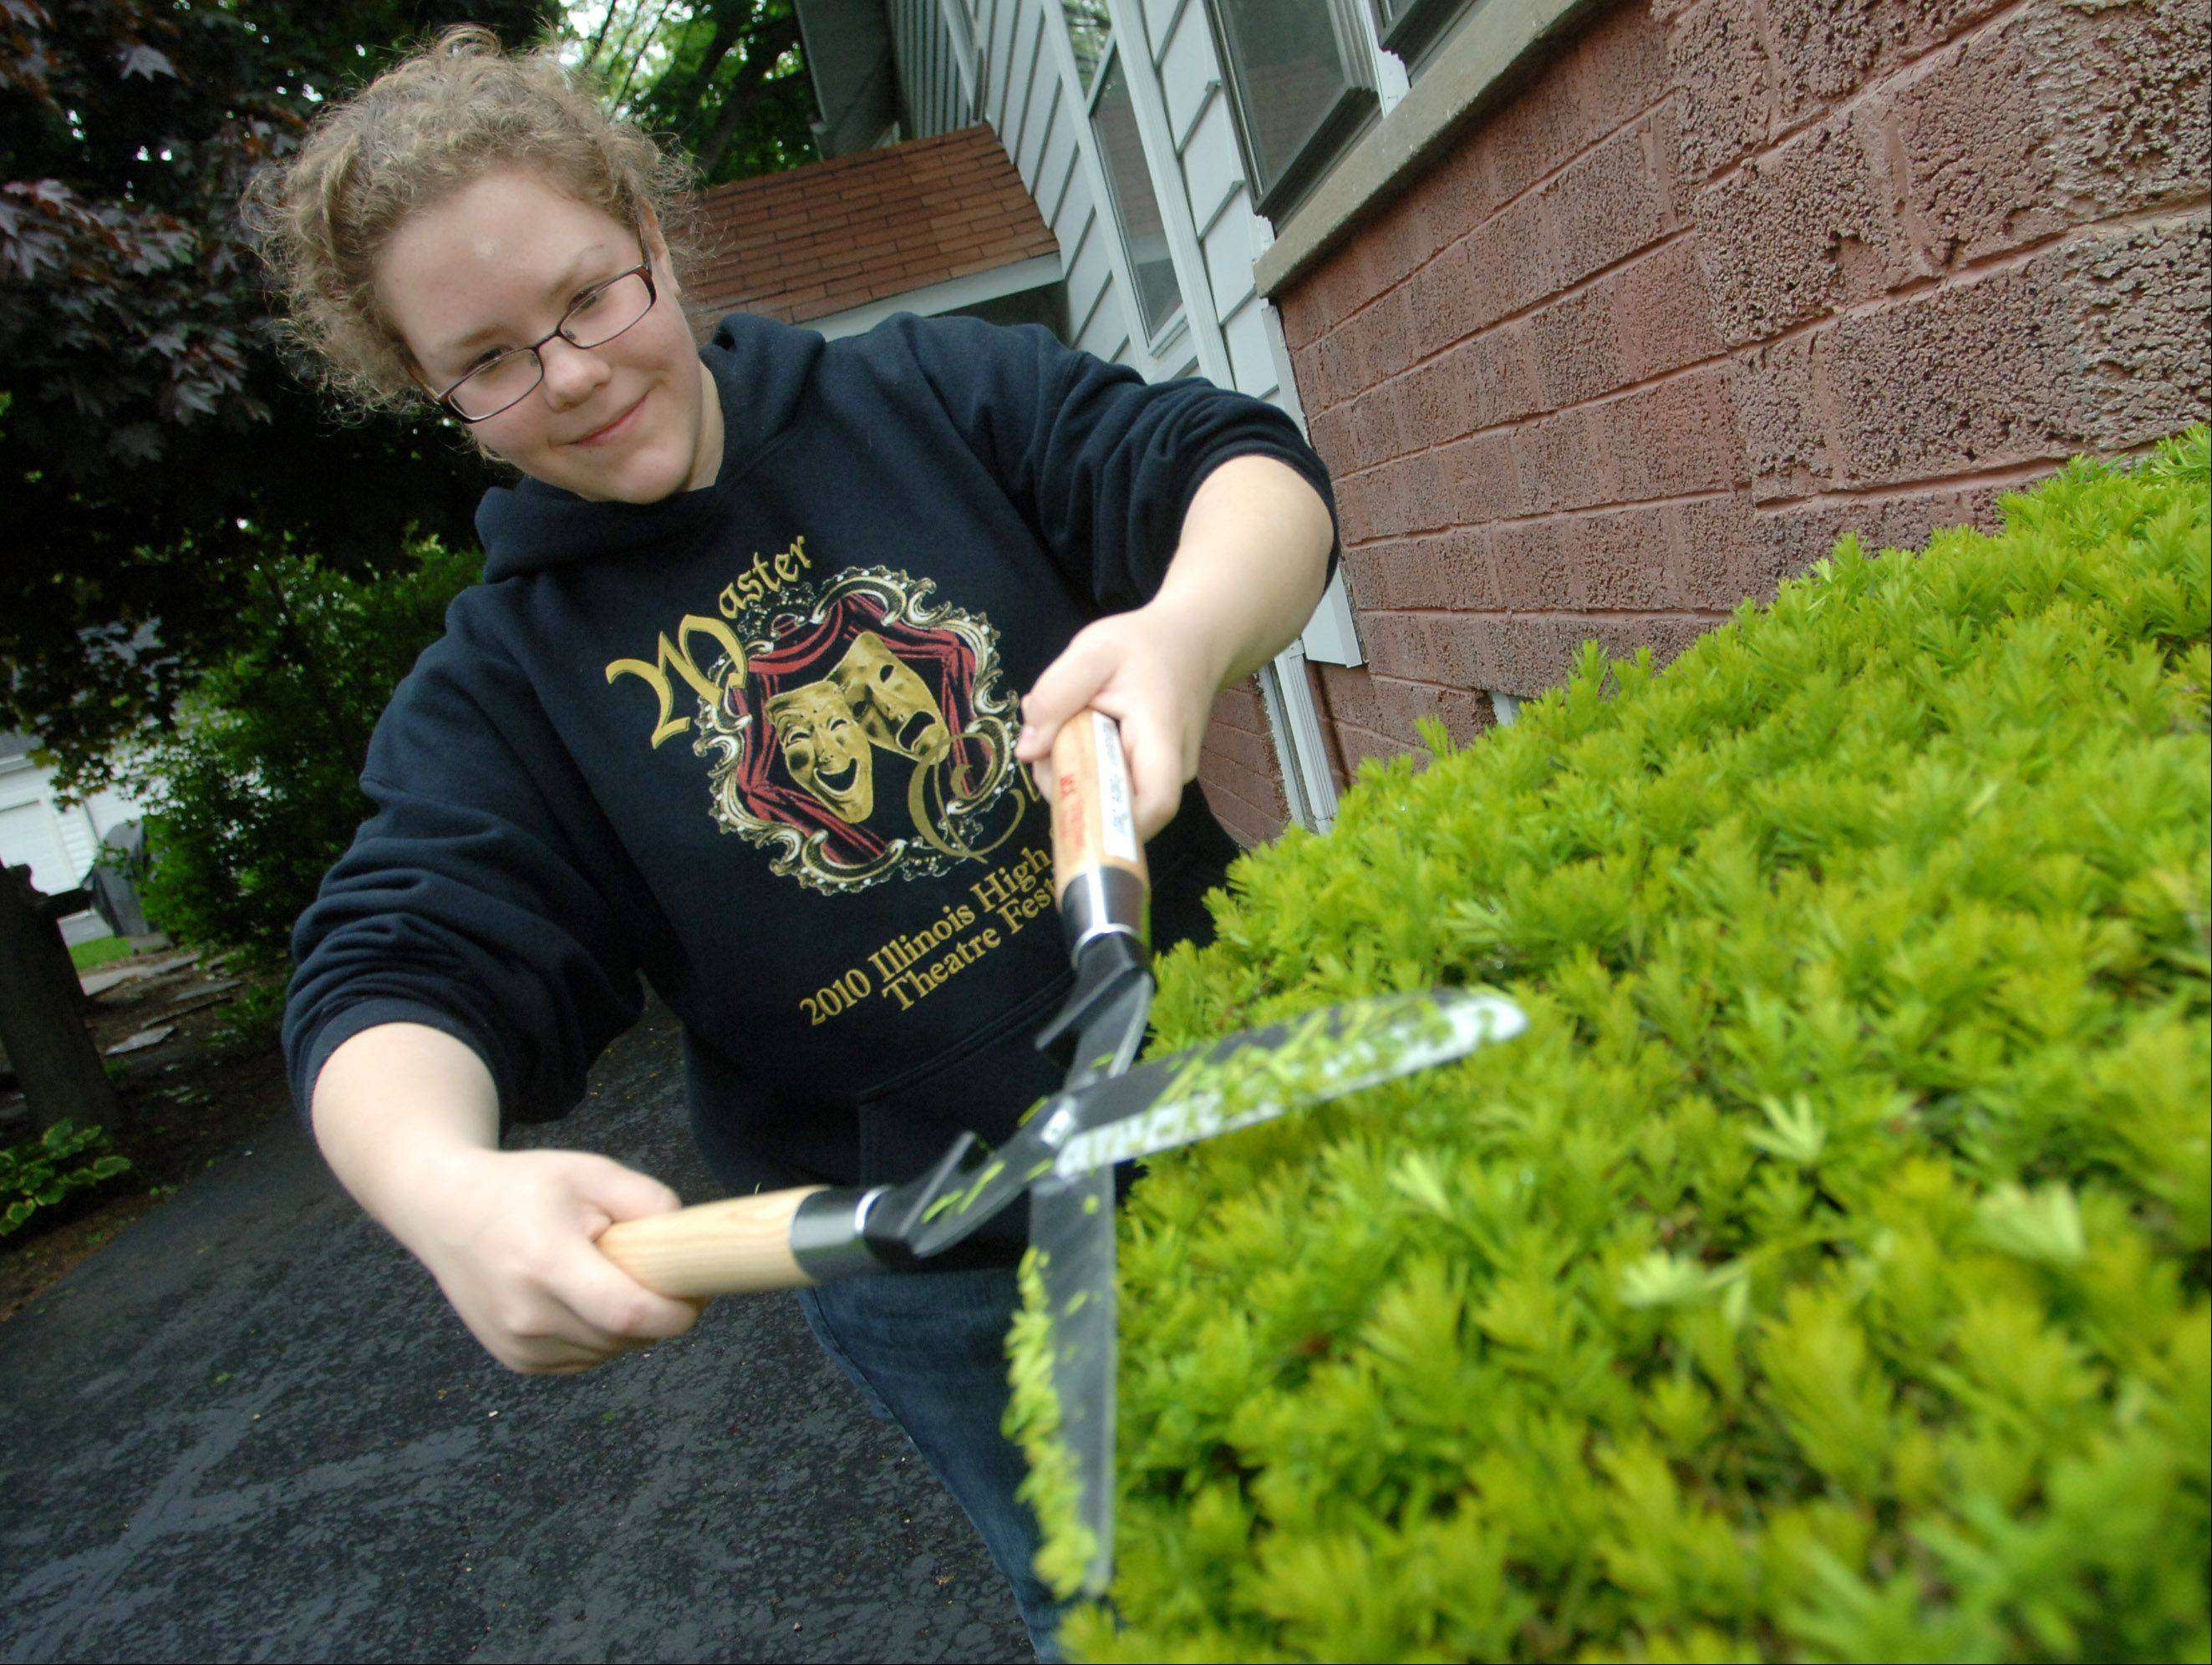 Arika Egan trims bushes at a home on West Park Street during the 2011 A-May-Zing Mundelein event.